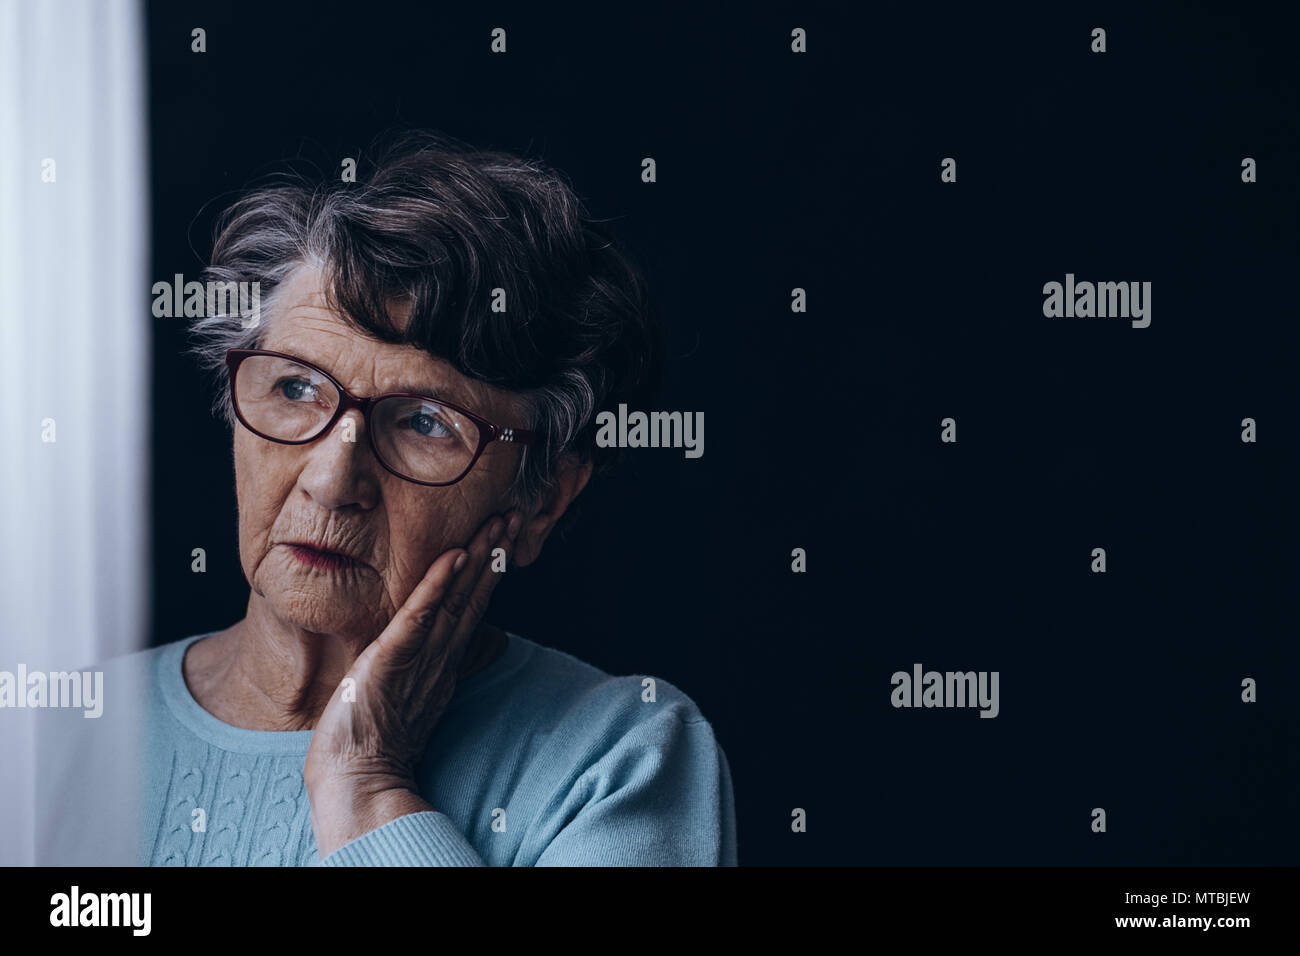 Sad, old woman standing alone in dark room - Stock Image